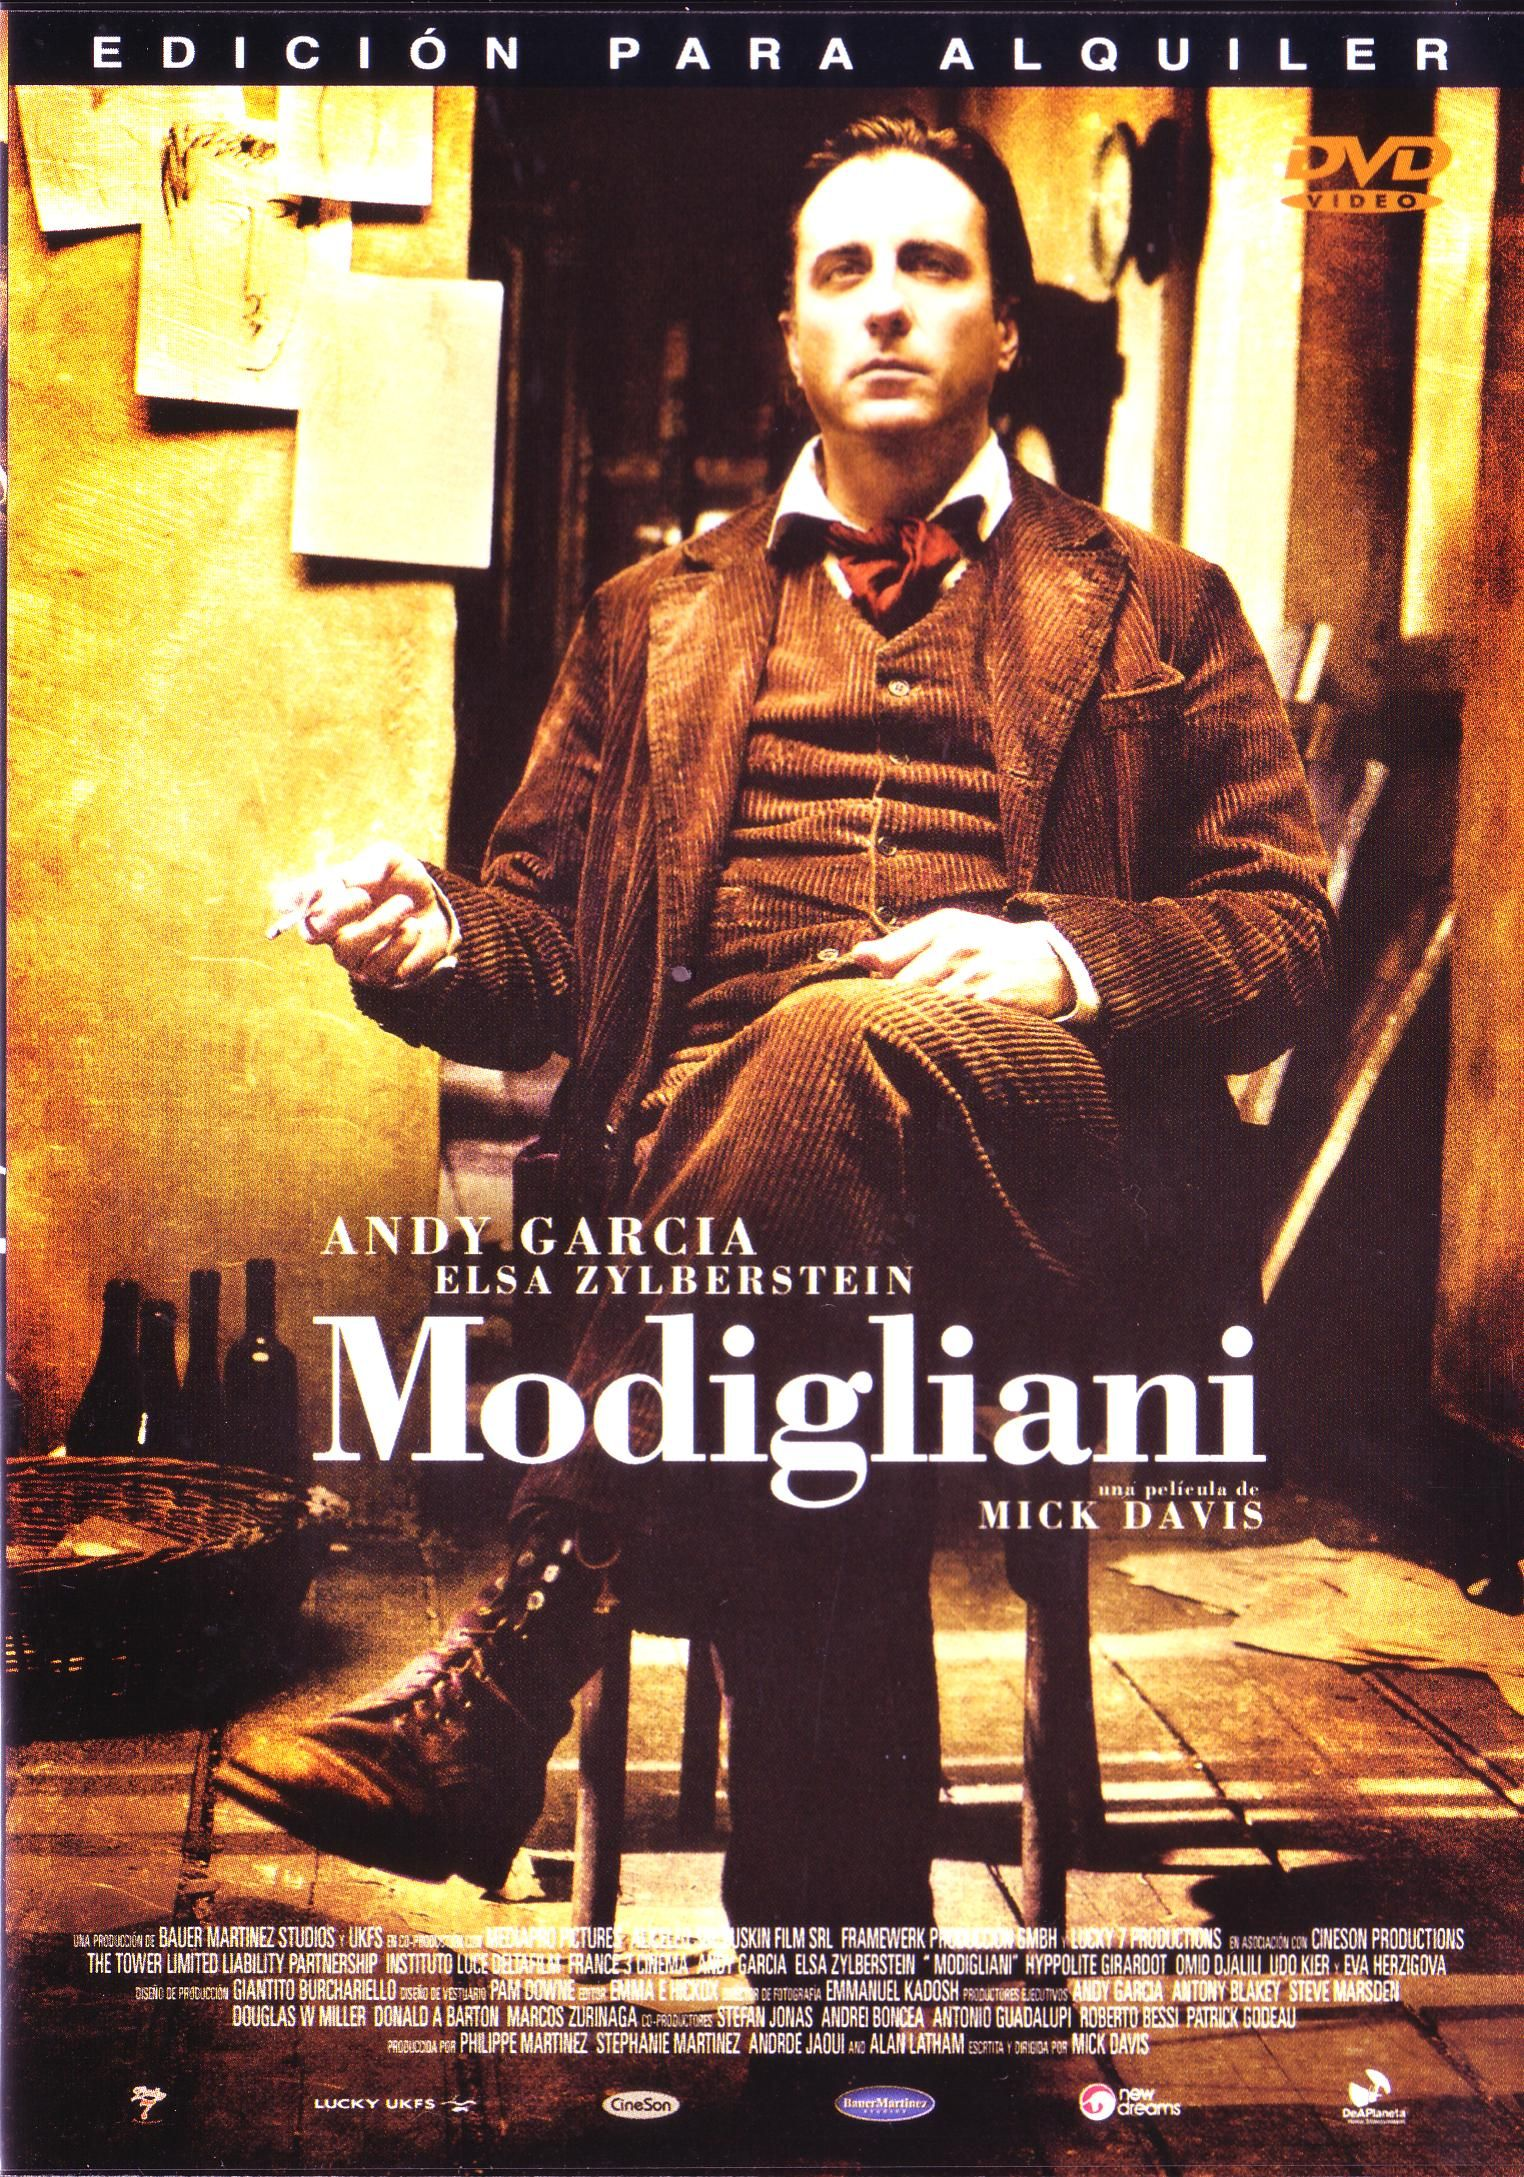 Modigliani- would like to see this.